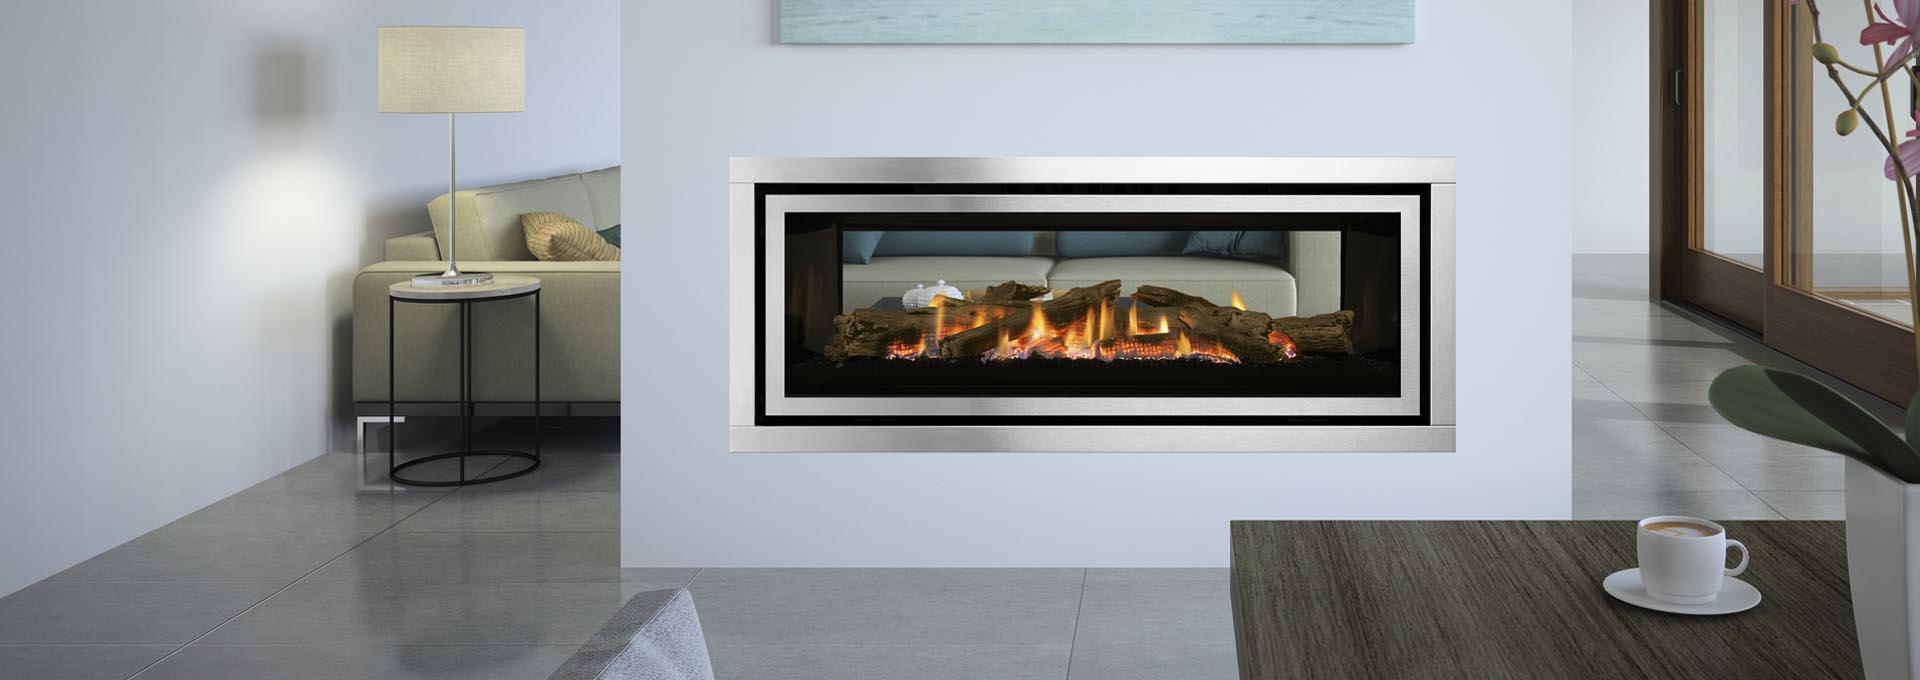 Wood Gas Fireplaces Inbuilts Freestanding Regency Products